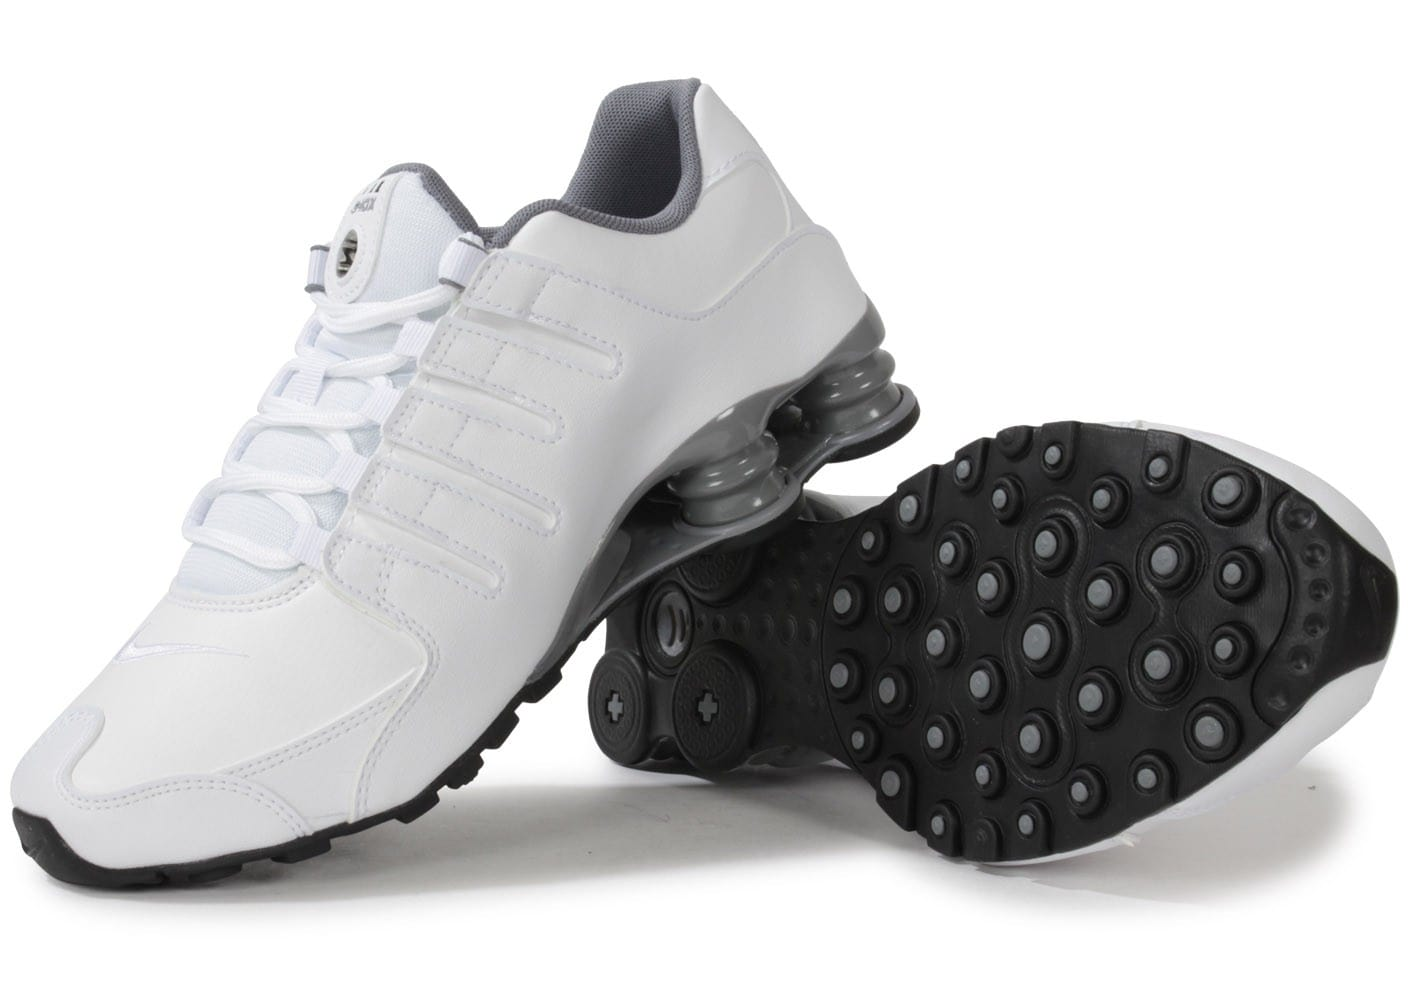 huge selection of 238f0 5331a ... Chaussures Nike Shox Nz Blanche vue intérieure ...